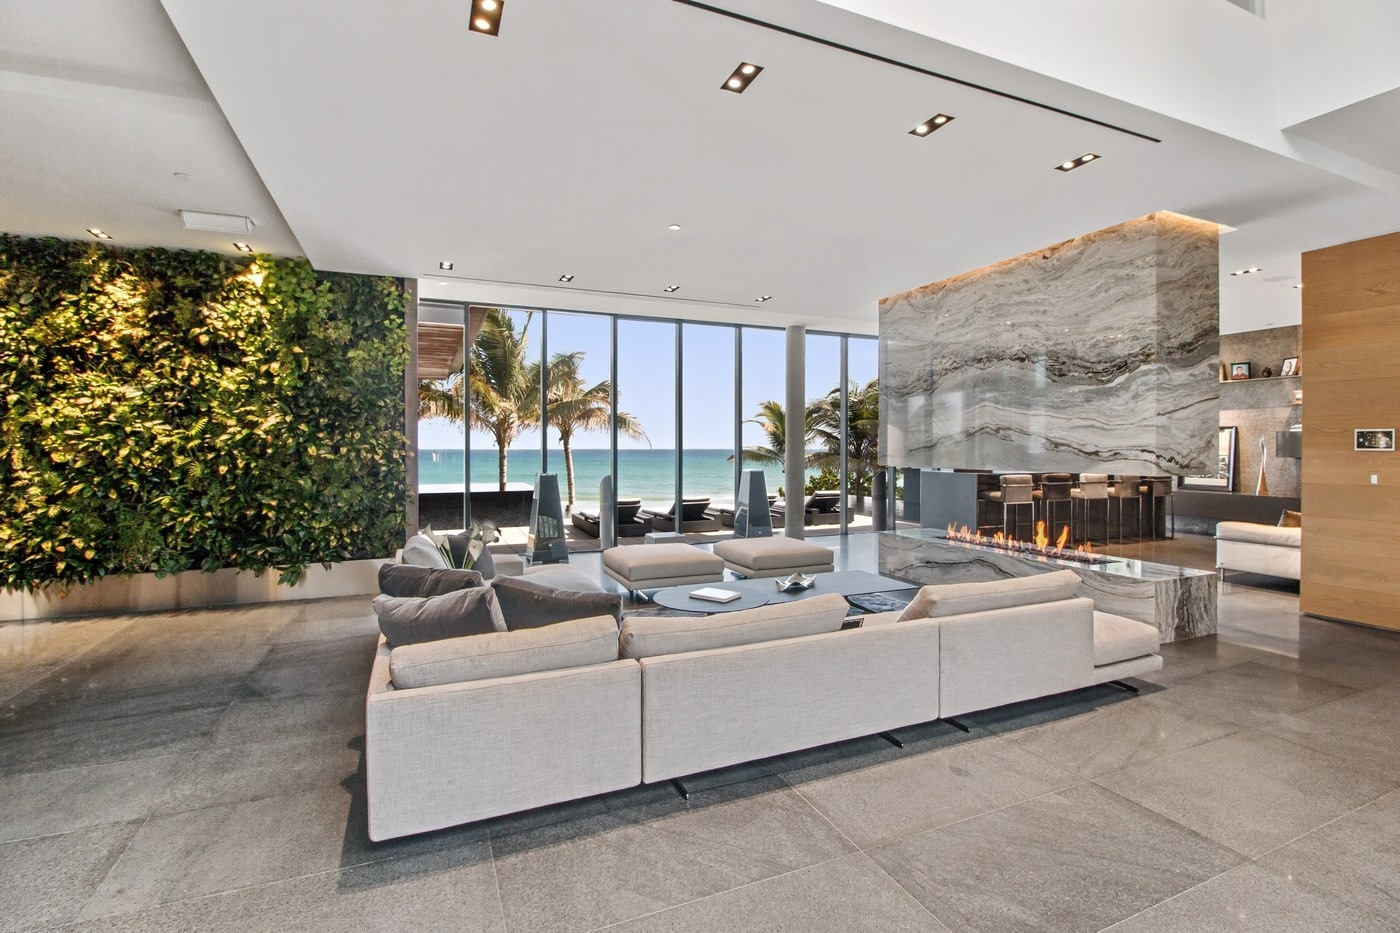 Check Out This Dental Mogul's Highland Beach Bunker Estate Which Just Hit The Market For $27.5 Million